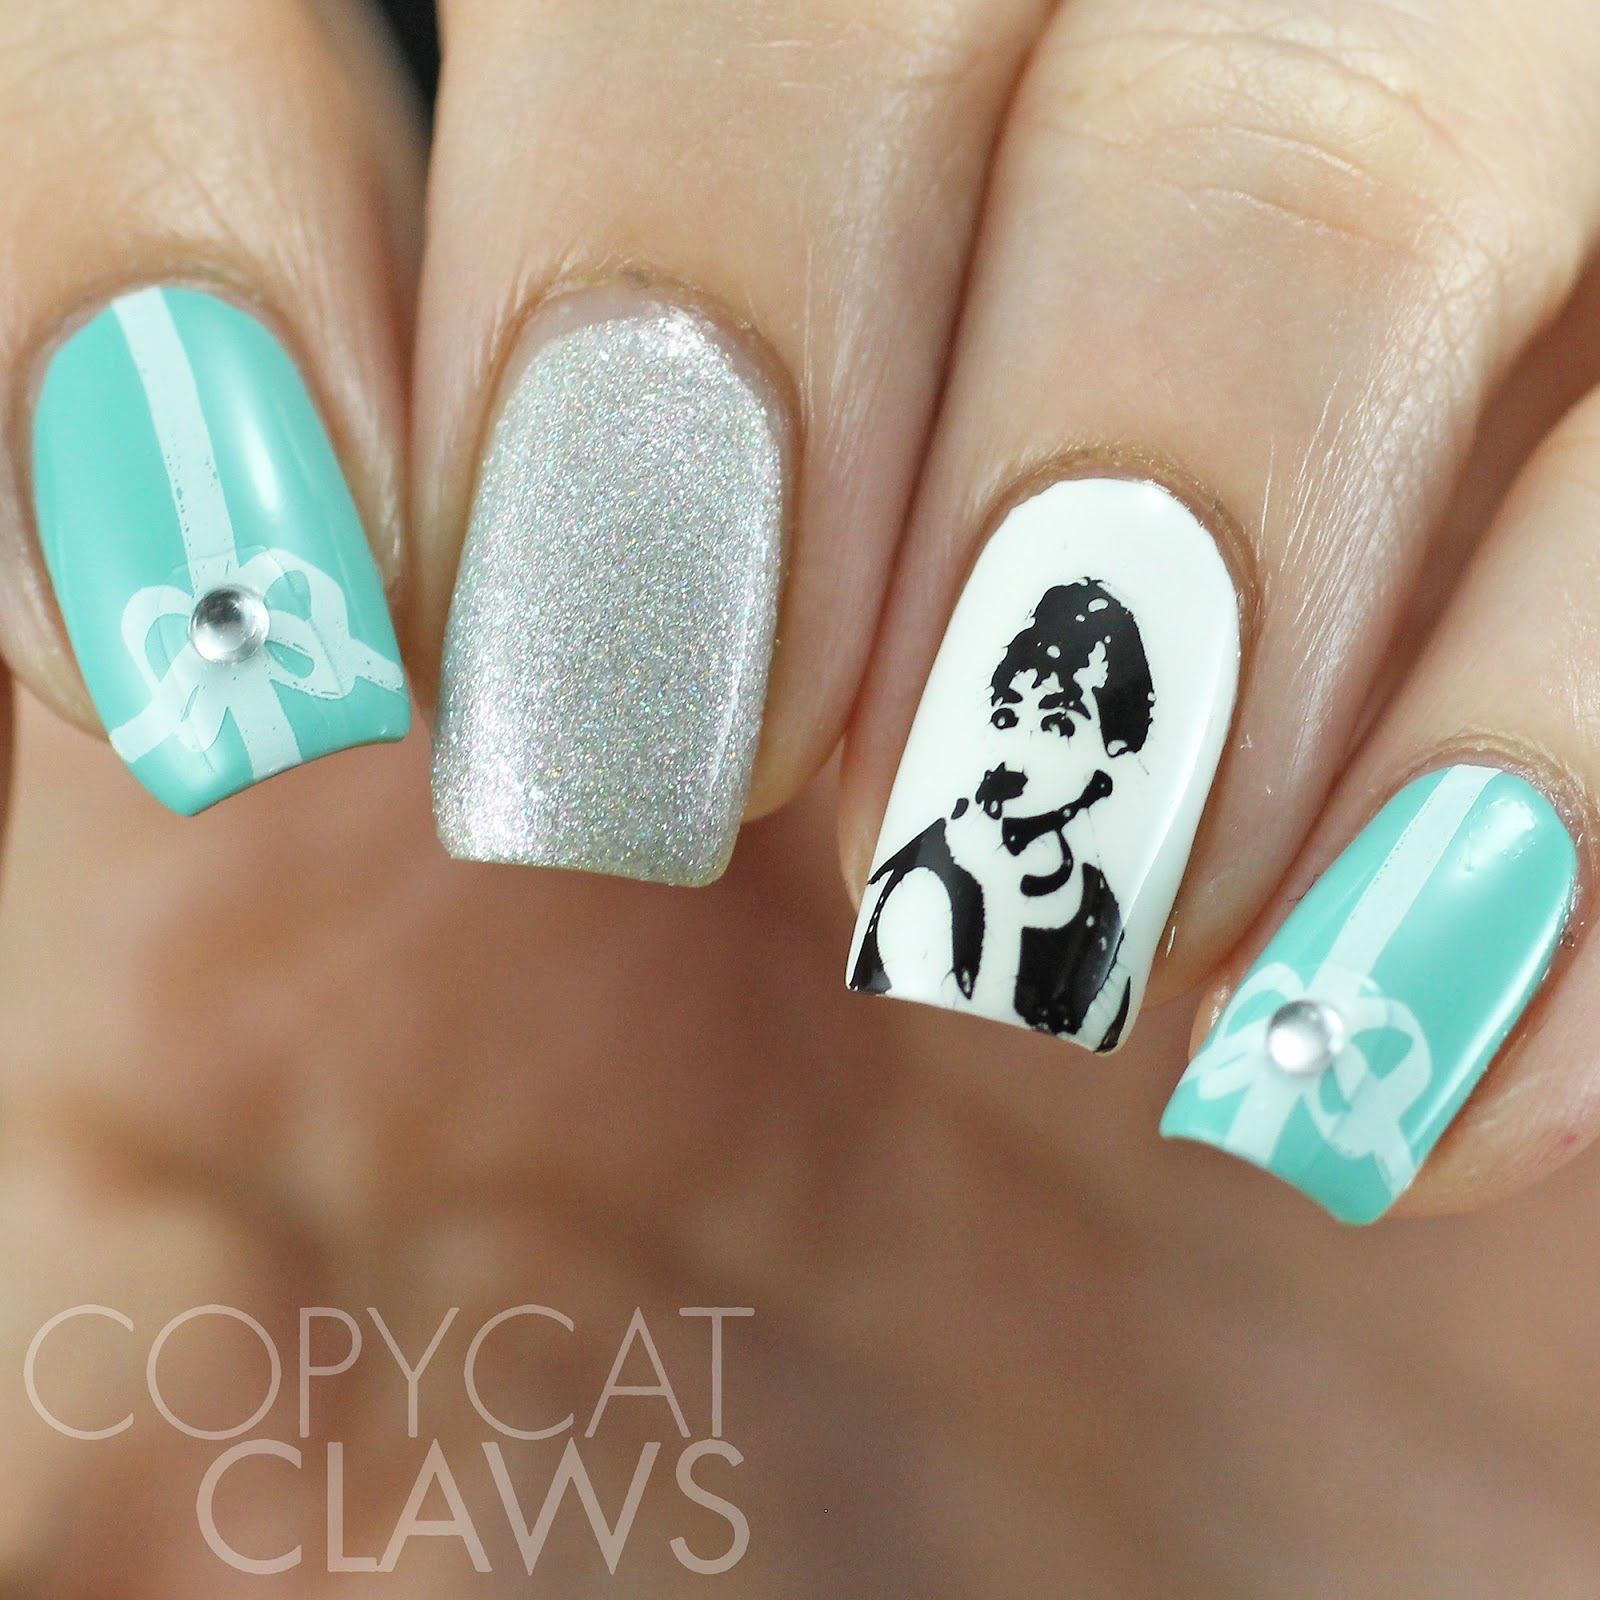 Copycat claws sunday stamping breakfast at tiffanyus beauty